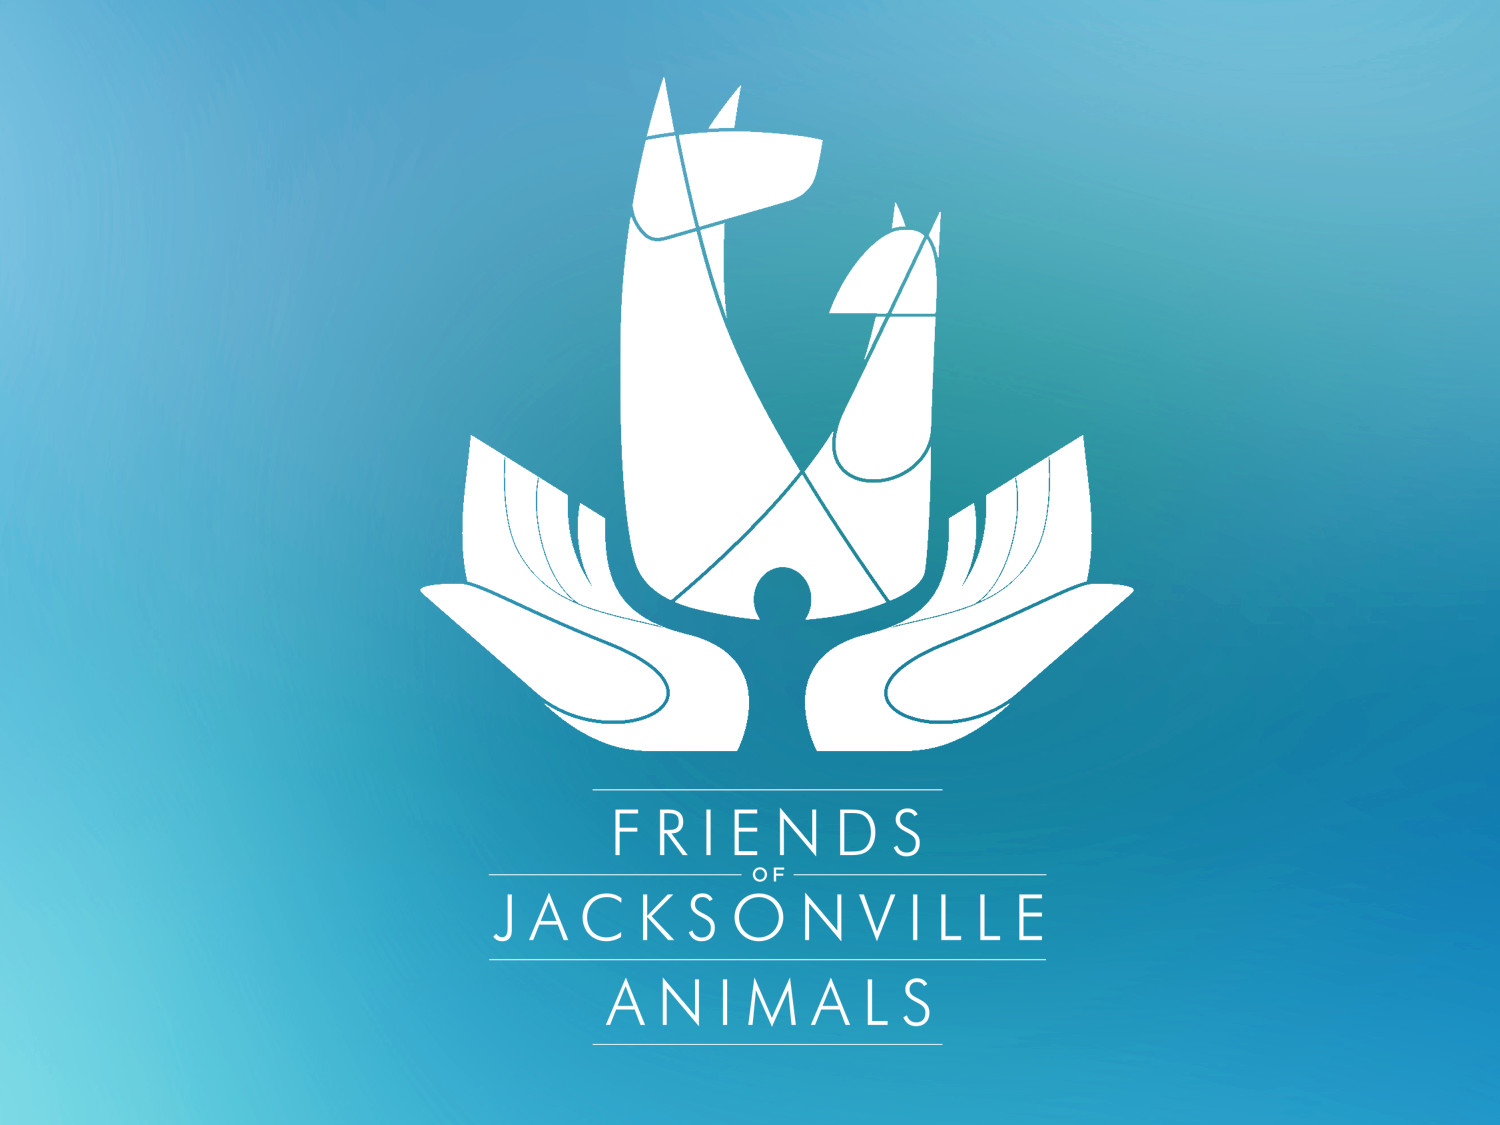 friends-of-jacksonville-animals.jpg